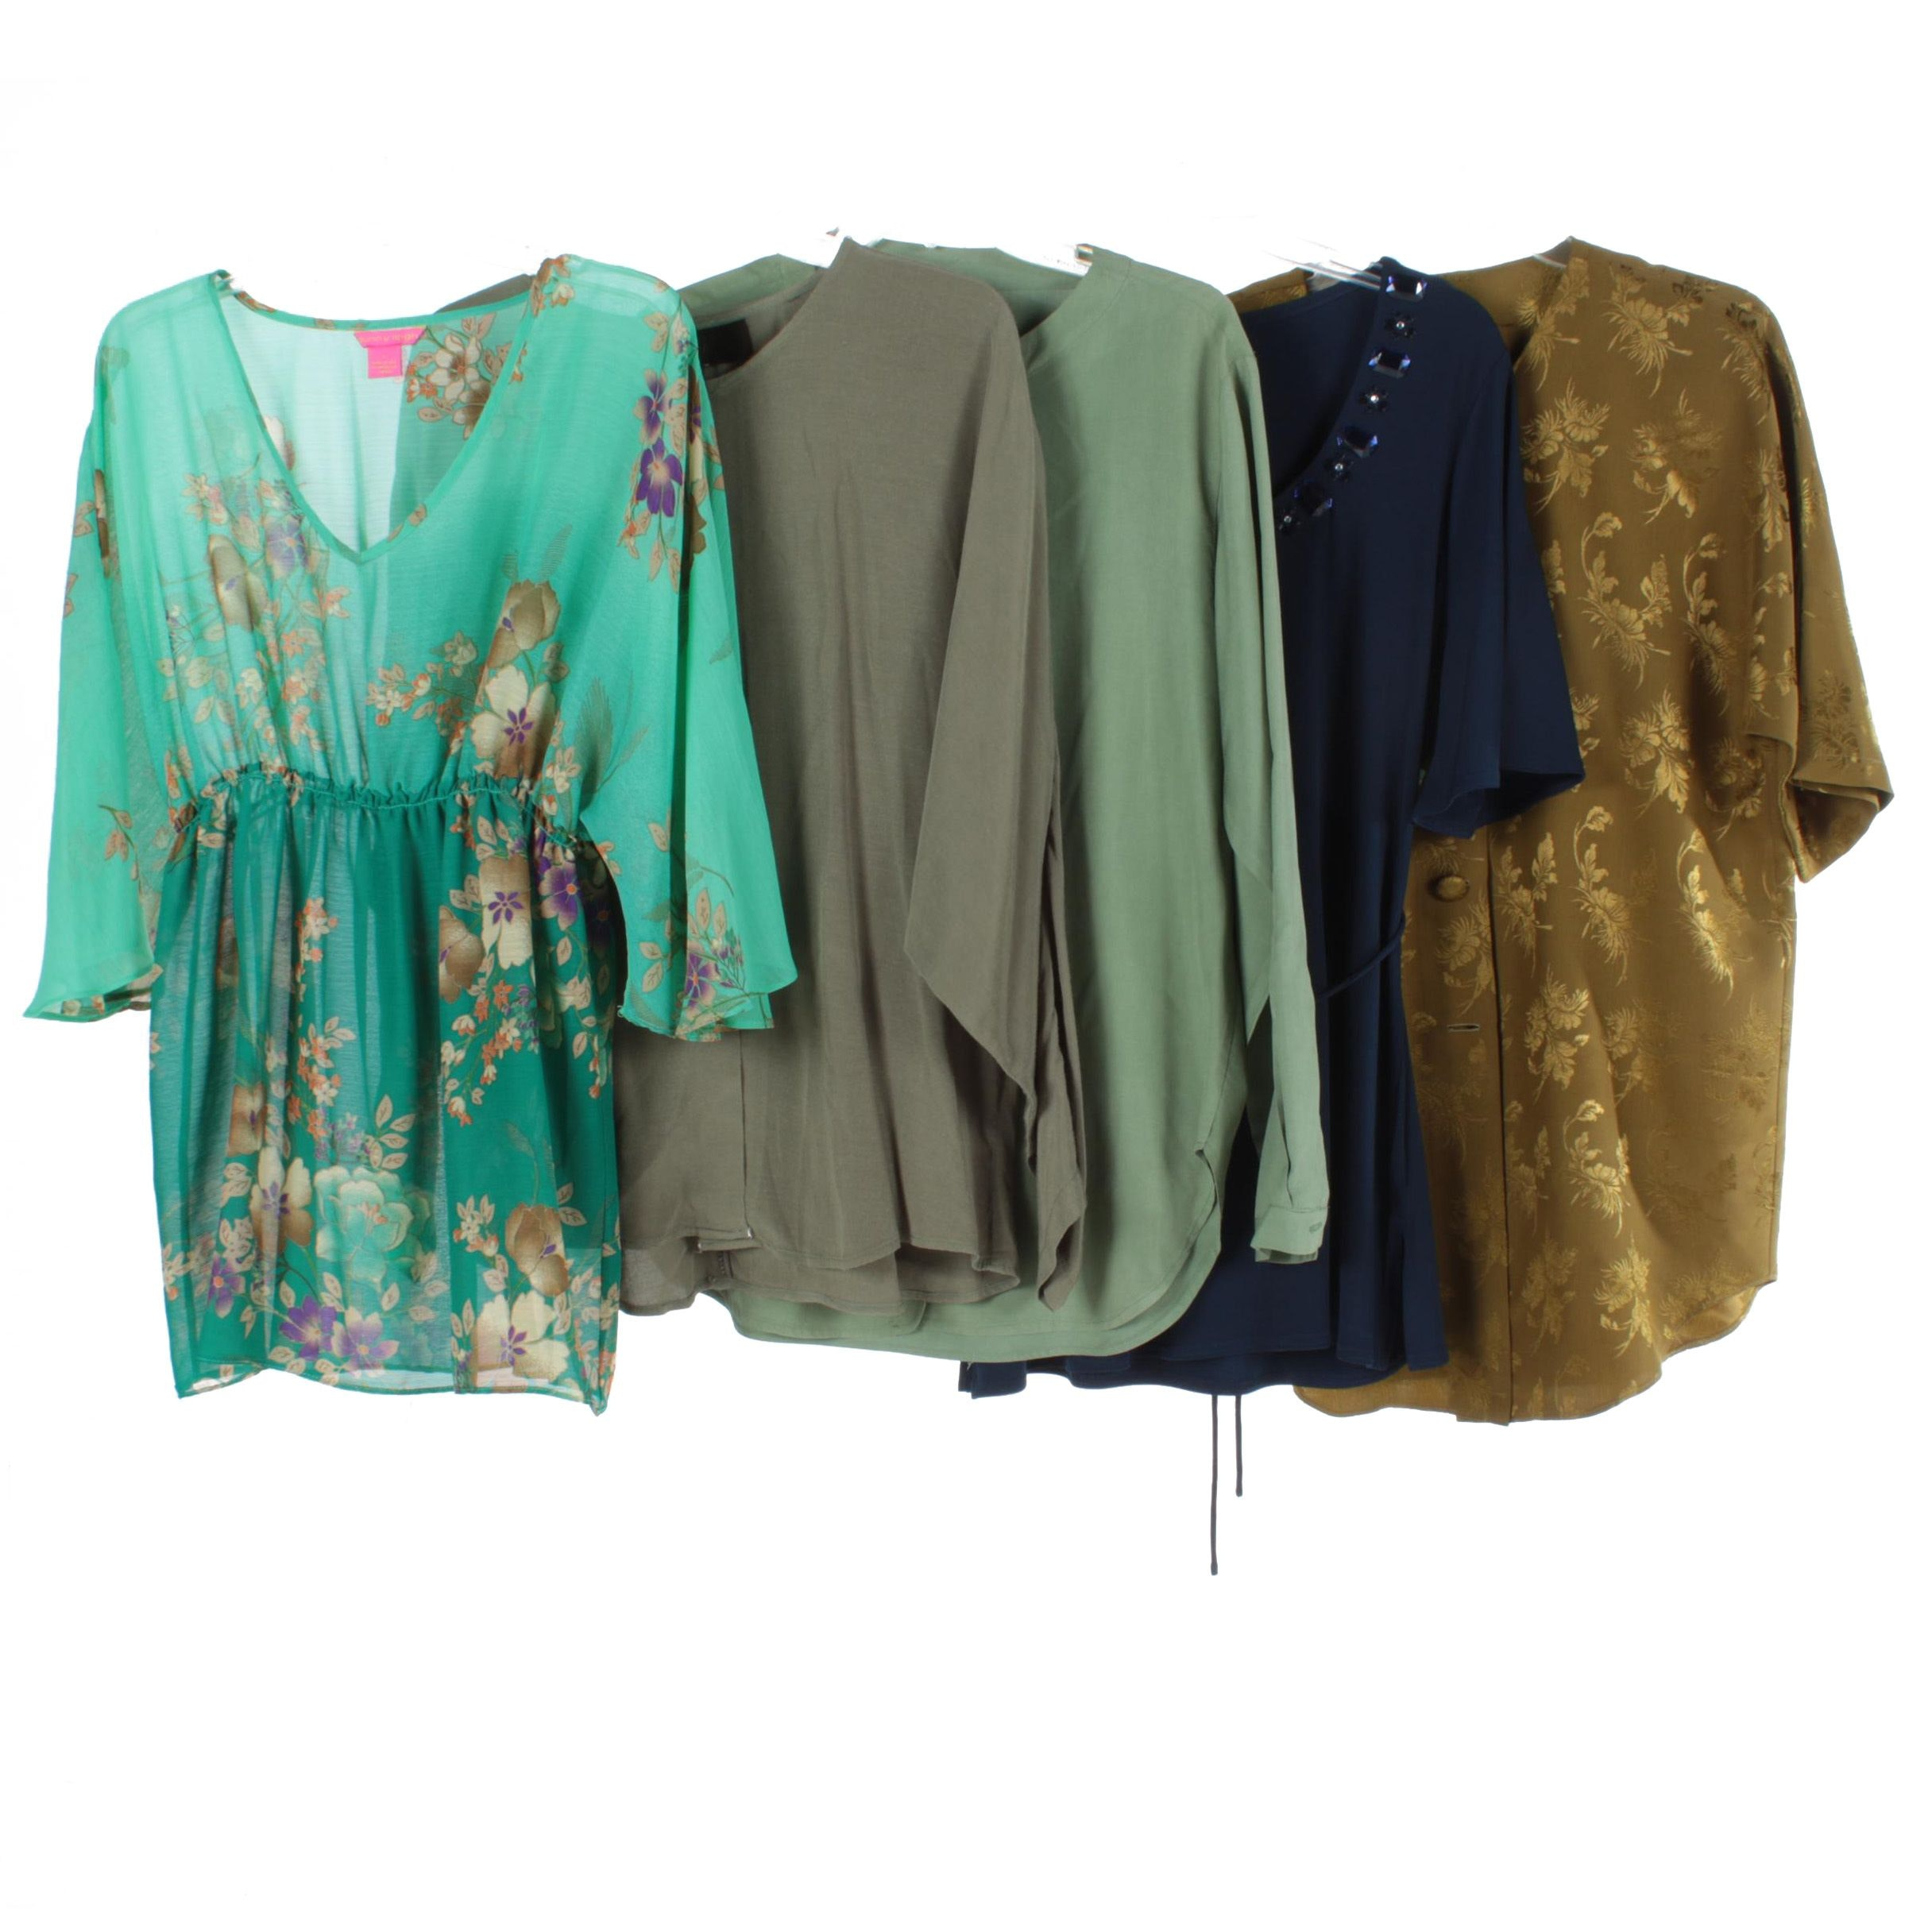 Women's Blouses Including Jaclyn Smith